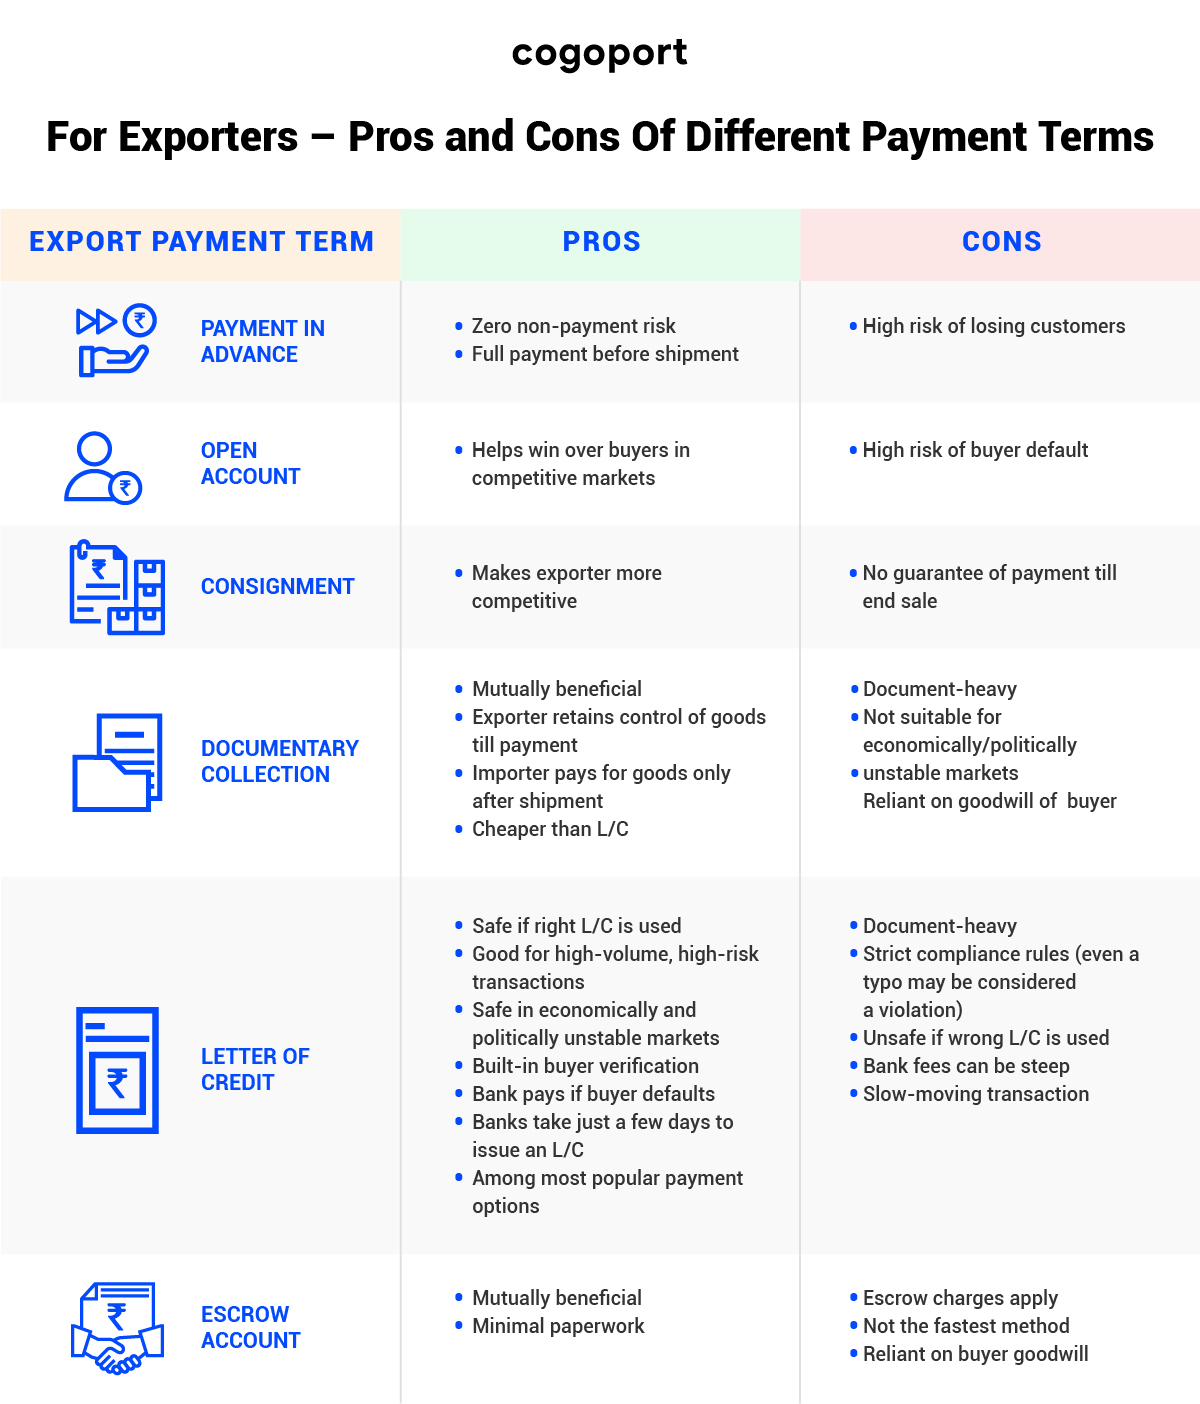 Pros and cons of different export payment terms